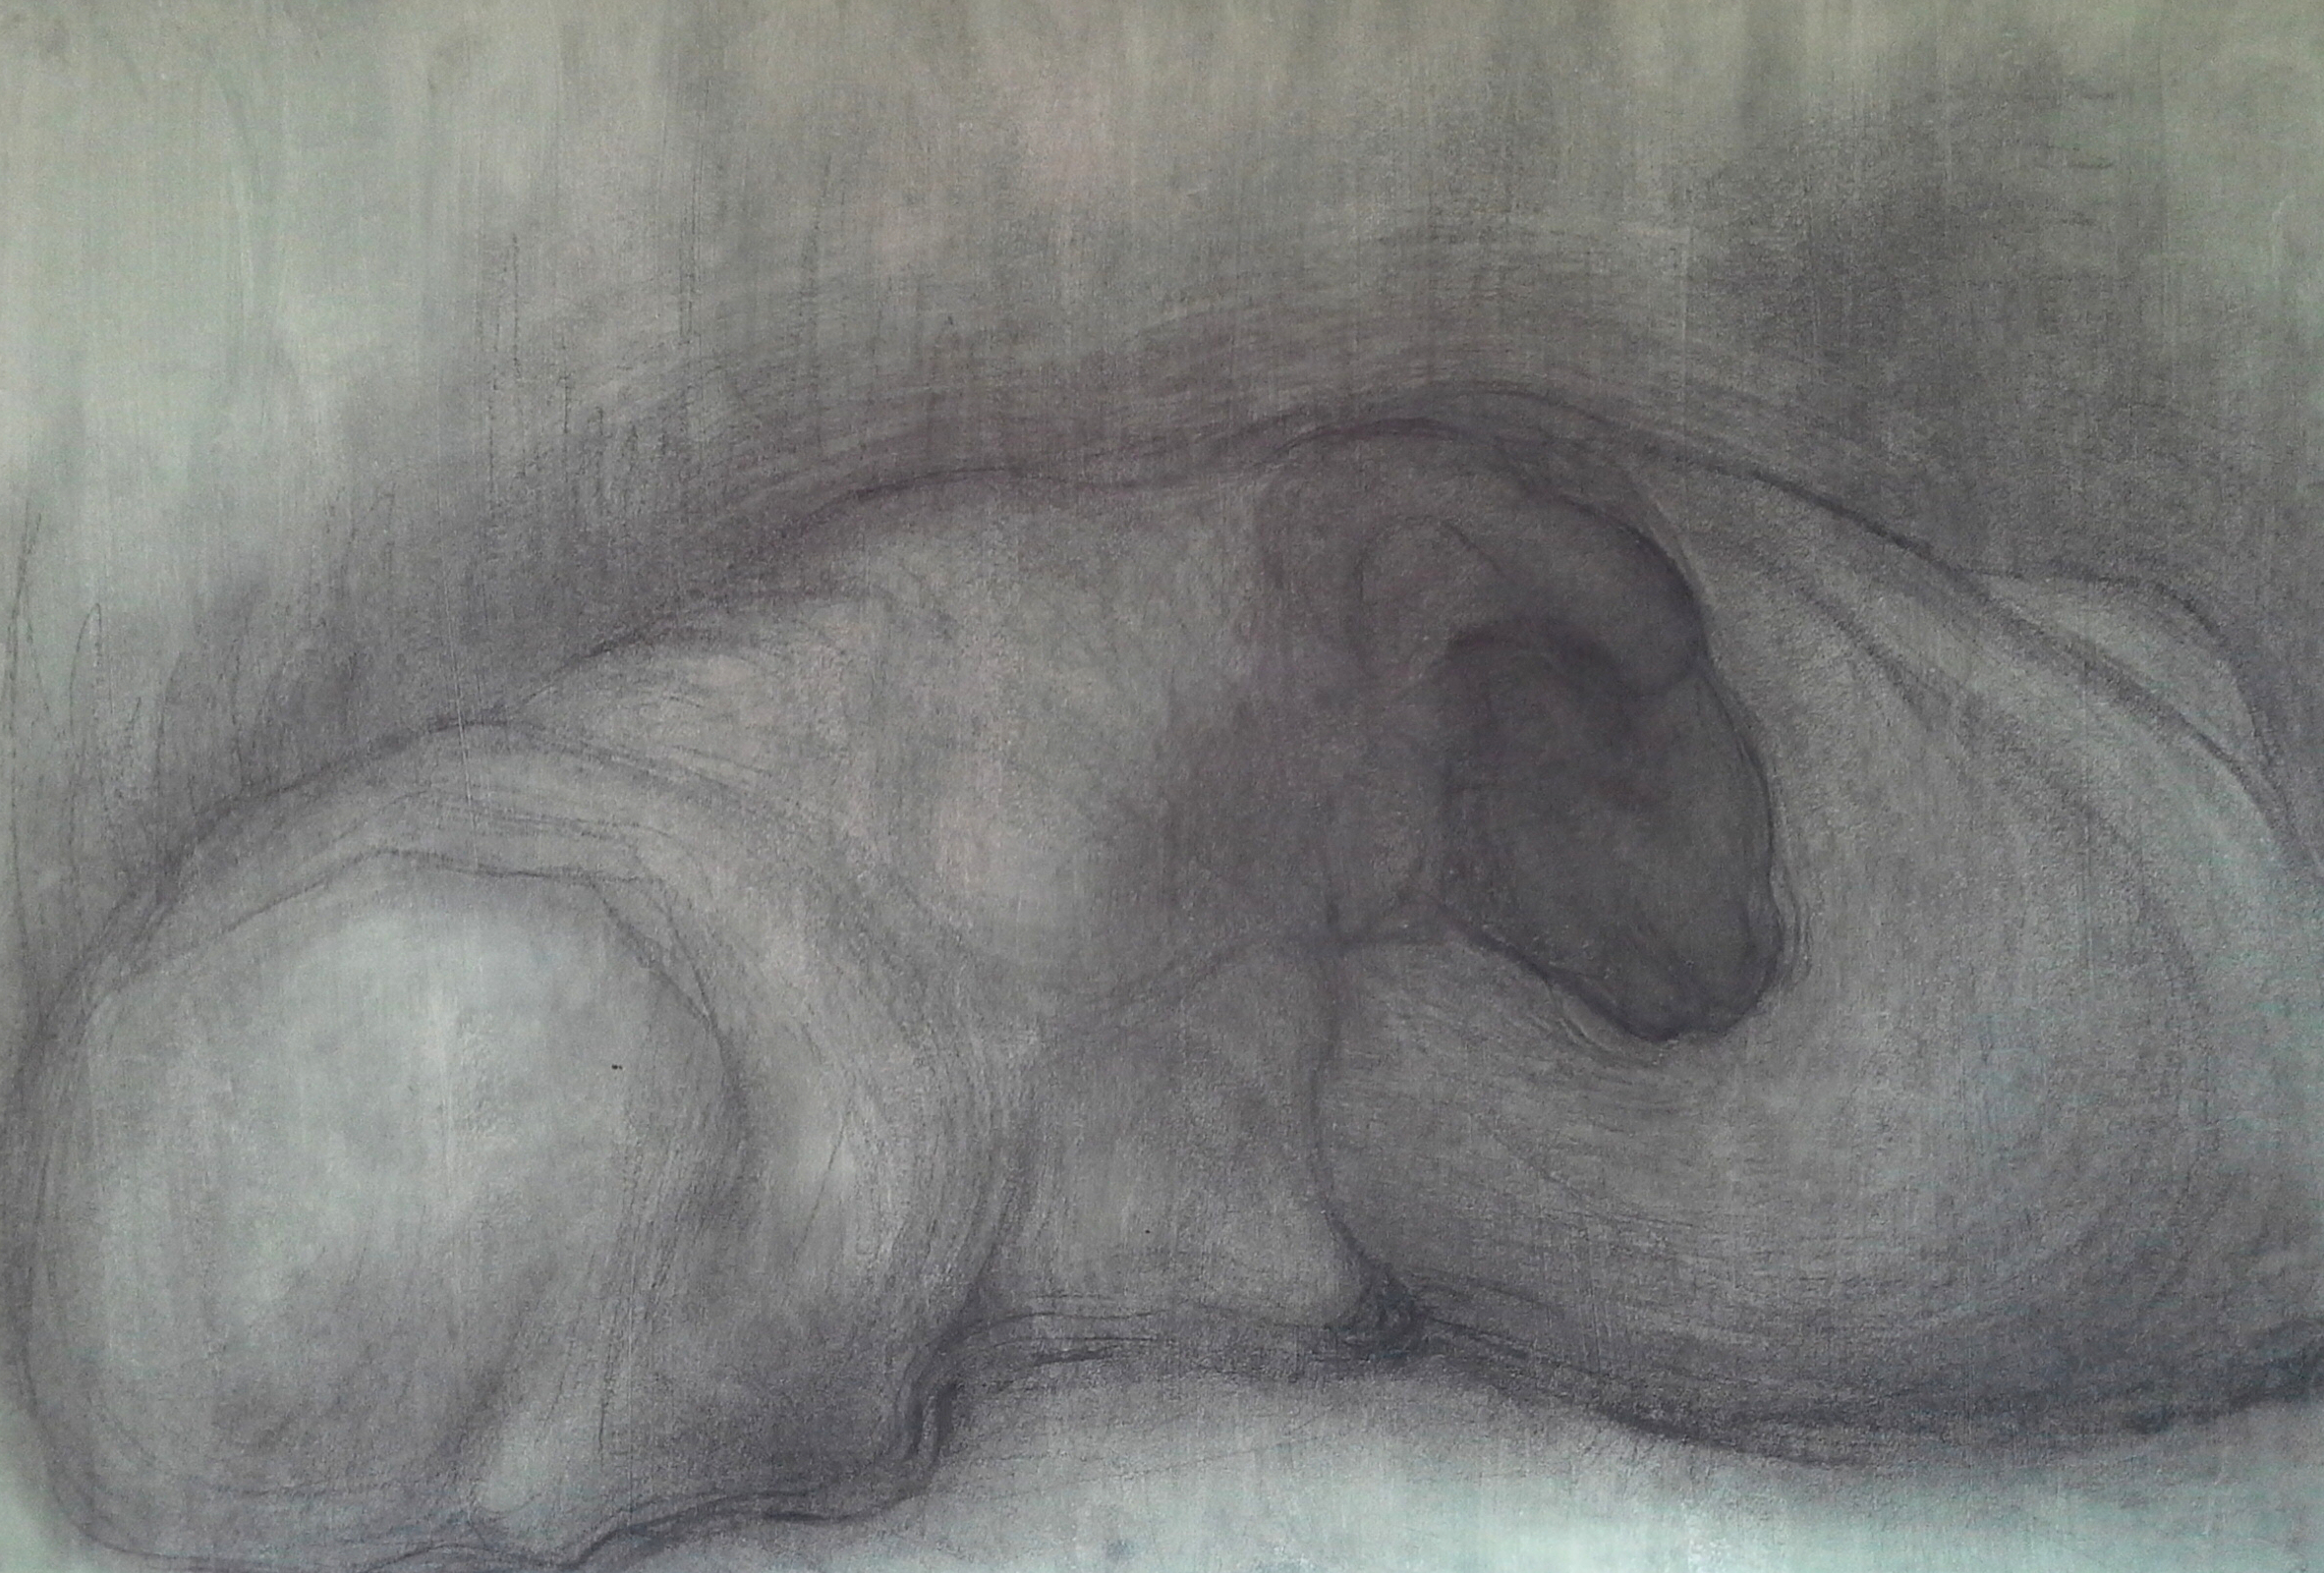 One of my drawings from life, Green sheep #2.